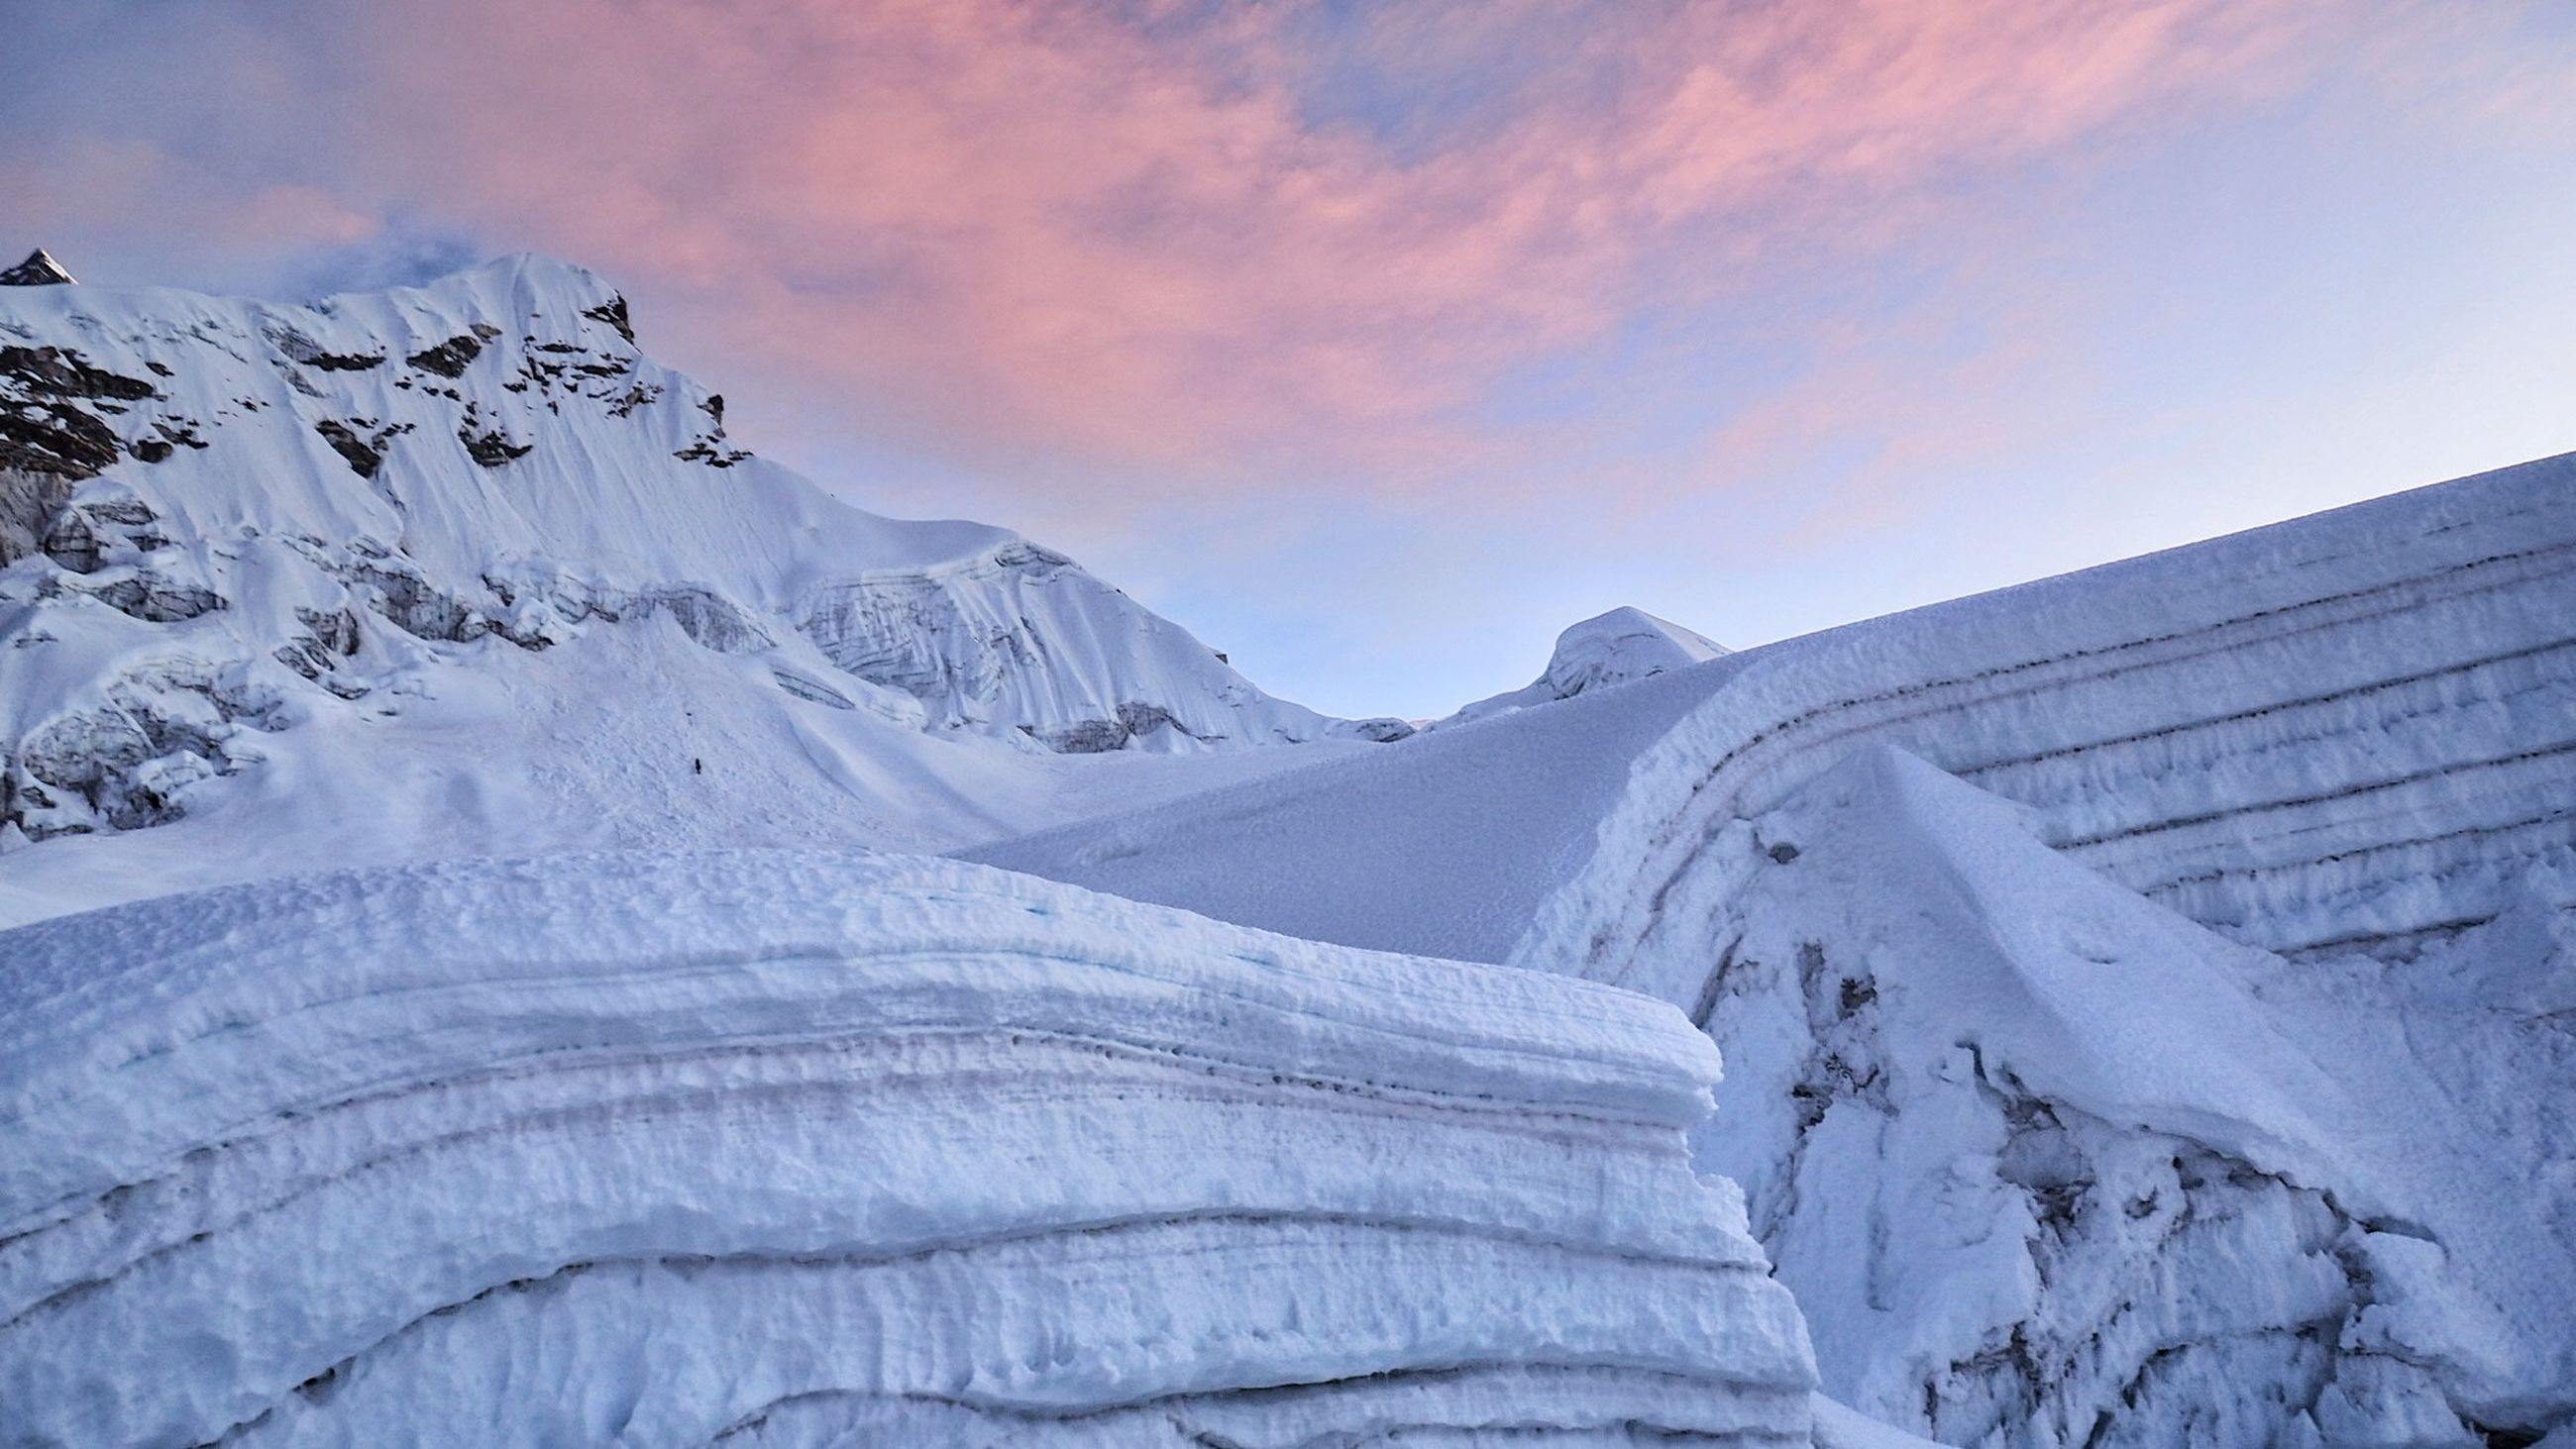 cold temperature, winter, snow, beauty in nature, sky, scenics - nature, tranquil scene, tranquility, cloud - sky, sunset, environment, white color, nature, covering, no people, idyllic, non-urban scene, landscape, mountain, snowcapped mountain, mountain peak